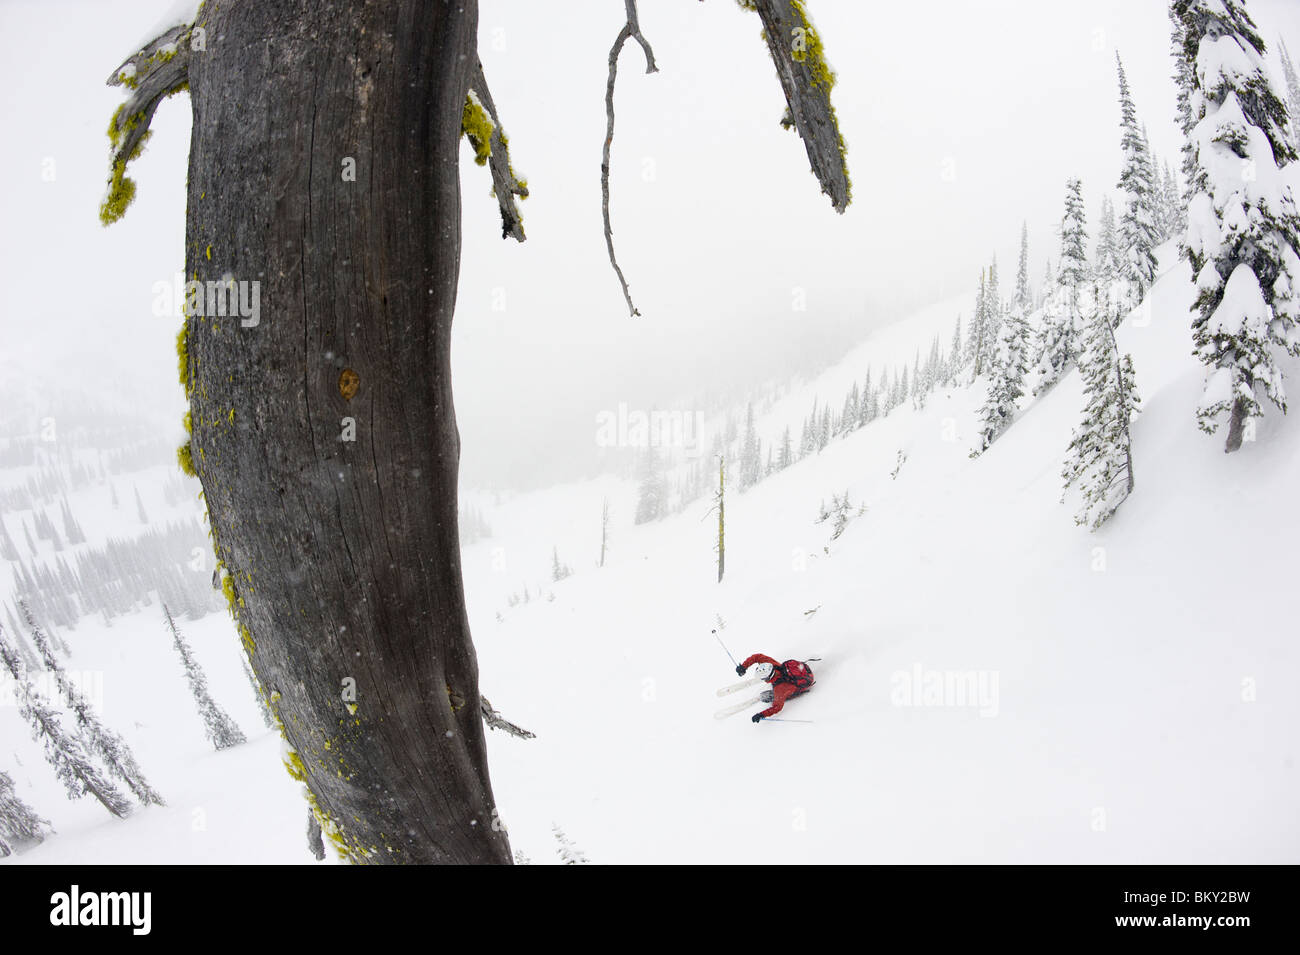 A backcountry skier skis down a steep gully into the fog. - Stock Image